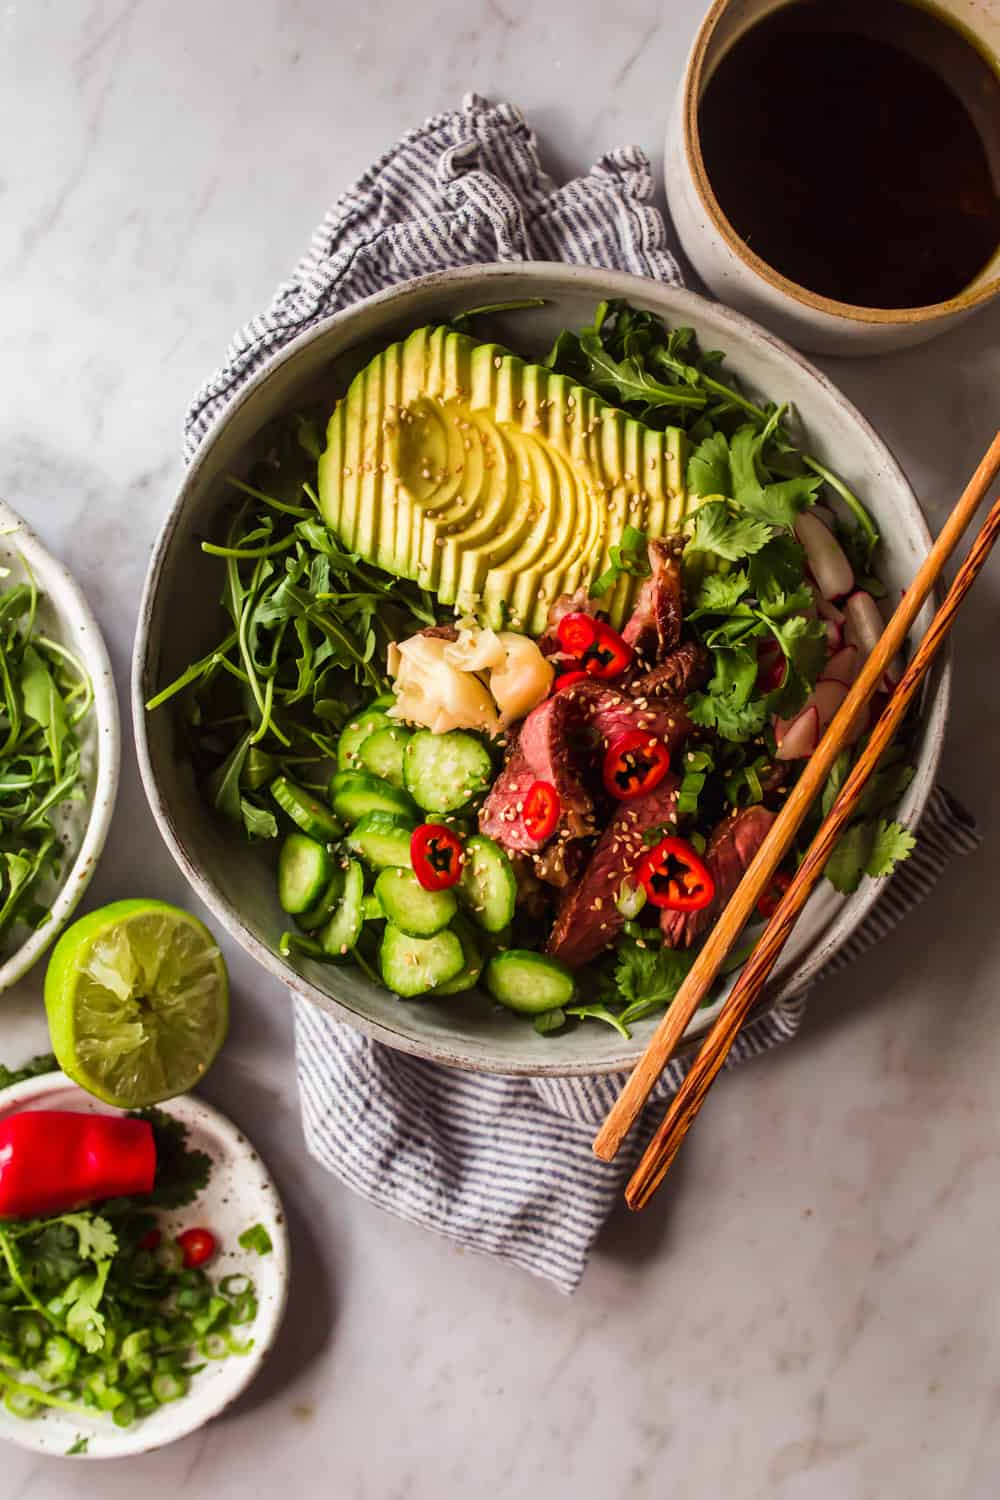 Large grey bowl with chopsticks filled with arugula, avocado, cucumber, steak, and vegetables.